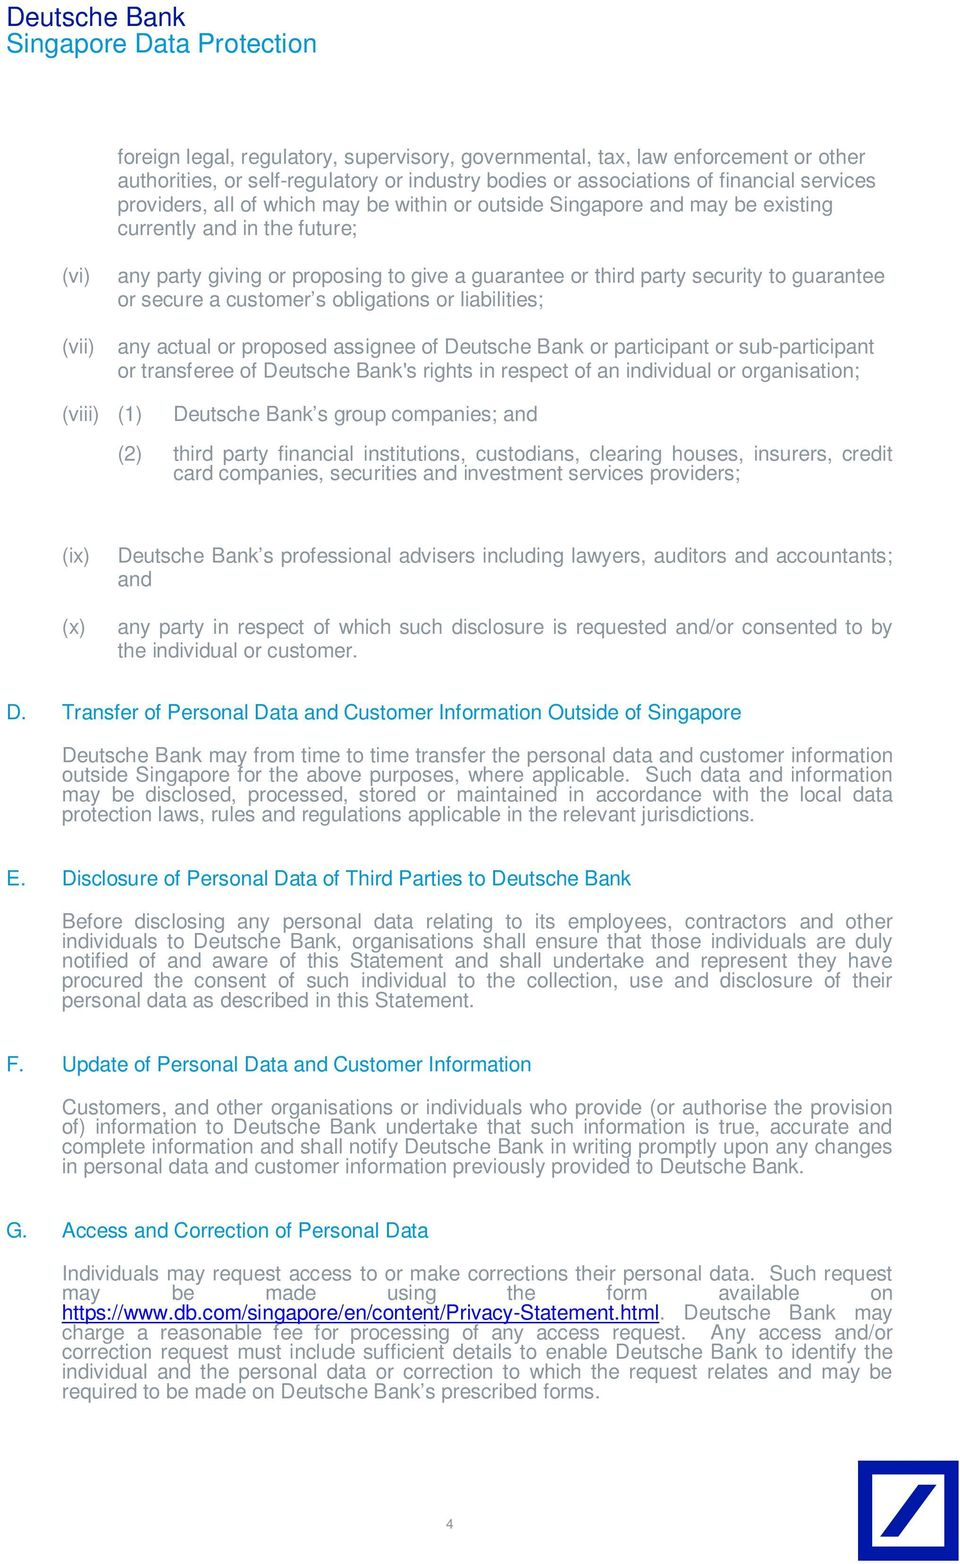 obligations or liabilities; (vii) any actual or proposed assignee of Deutsche Bank or participant or sub-participant or transferee of Deutsche Bank's rights in respect of an individual or